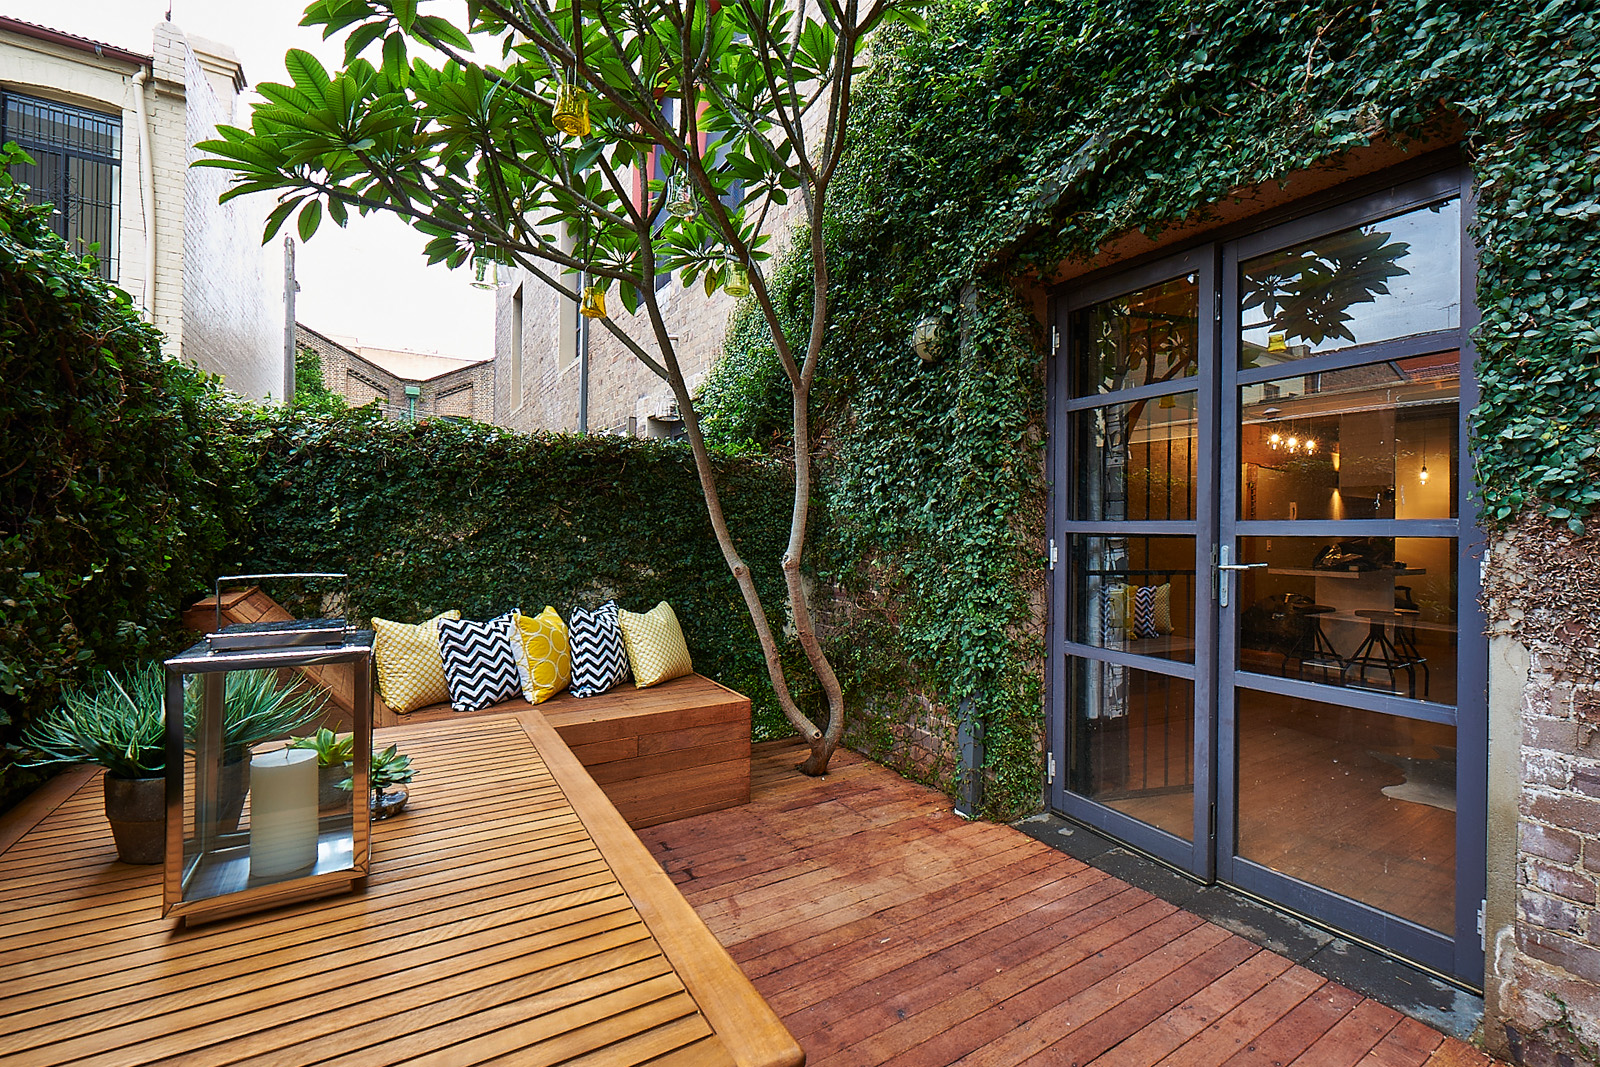 Cherie-Barber_Renovating-For-Profit_Chippendale-Warehouse_Courtyard-After